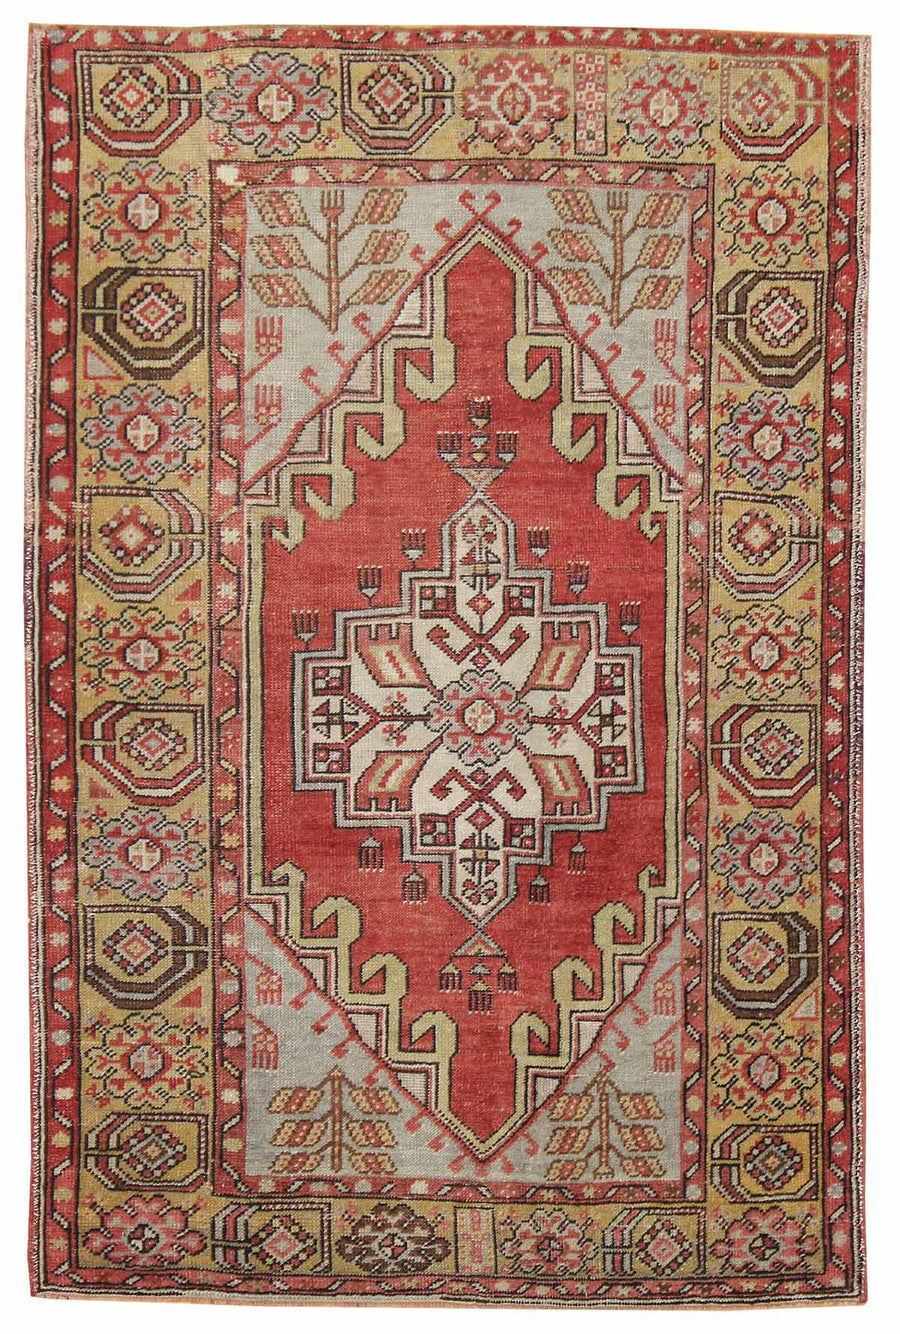 ORTAKOY HANDKNOTTED RUG, J42264